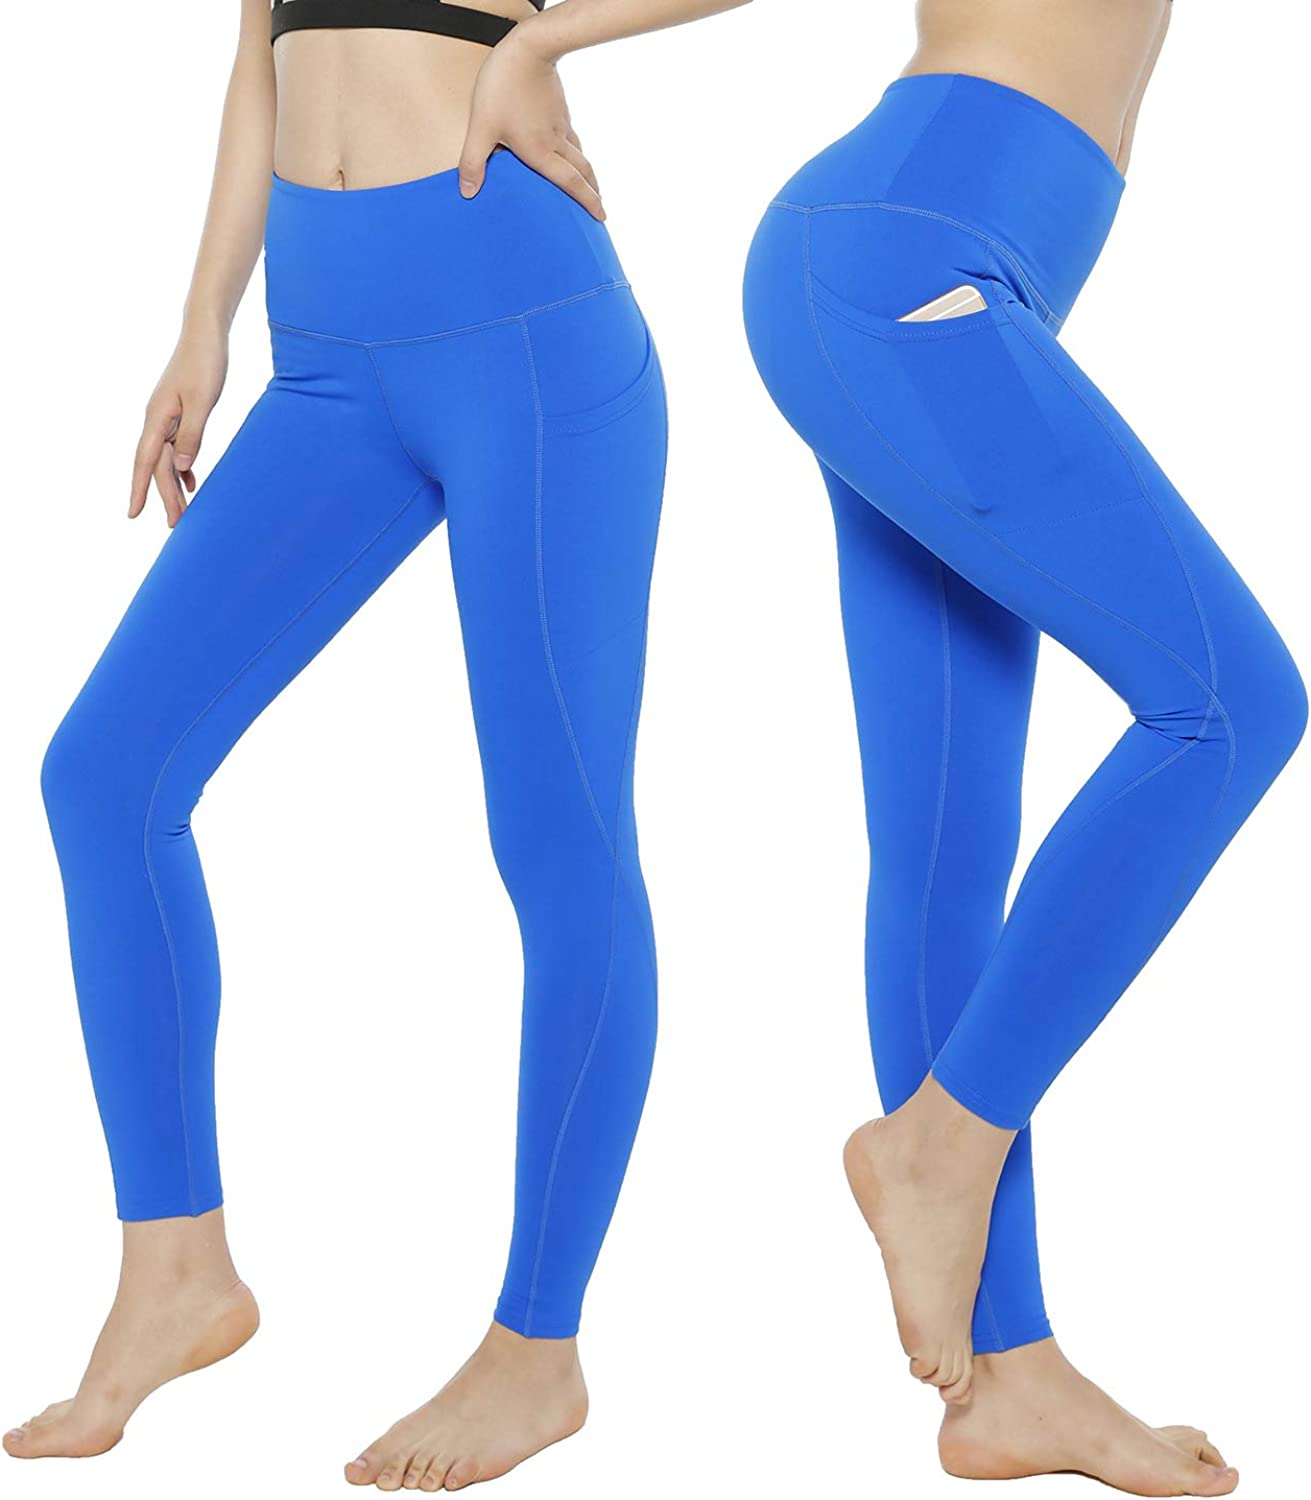 KT Tummy Control Yoga Leggings  High Waisted Super Compression Workout Leggings  Womens Fitness Postpartum Leggings Pants with Pockets (Small, blueeSide Pockets)